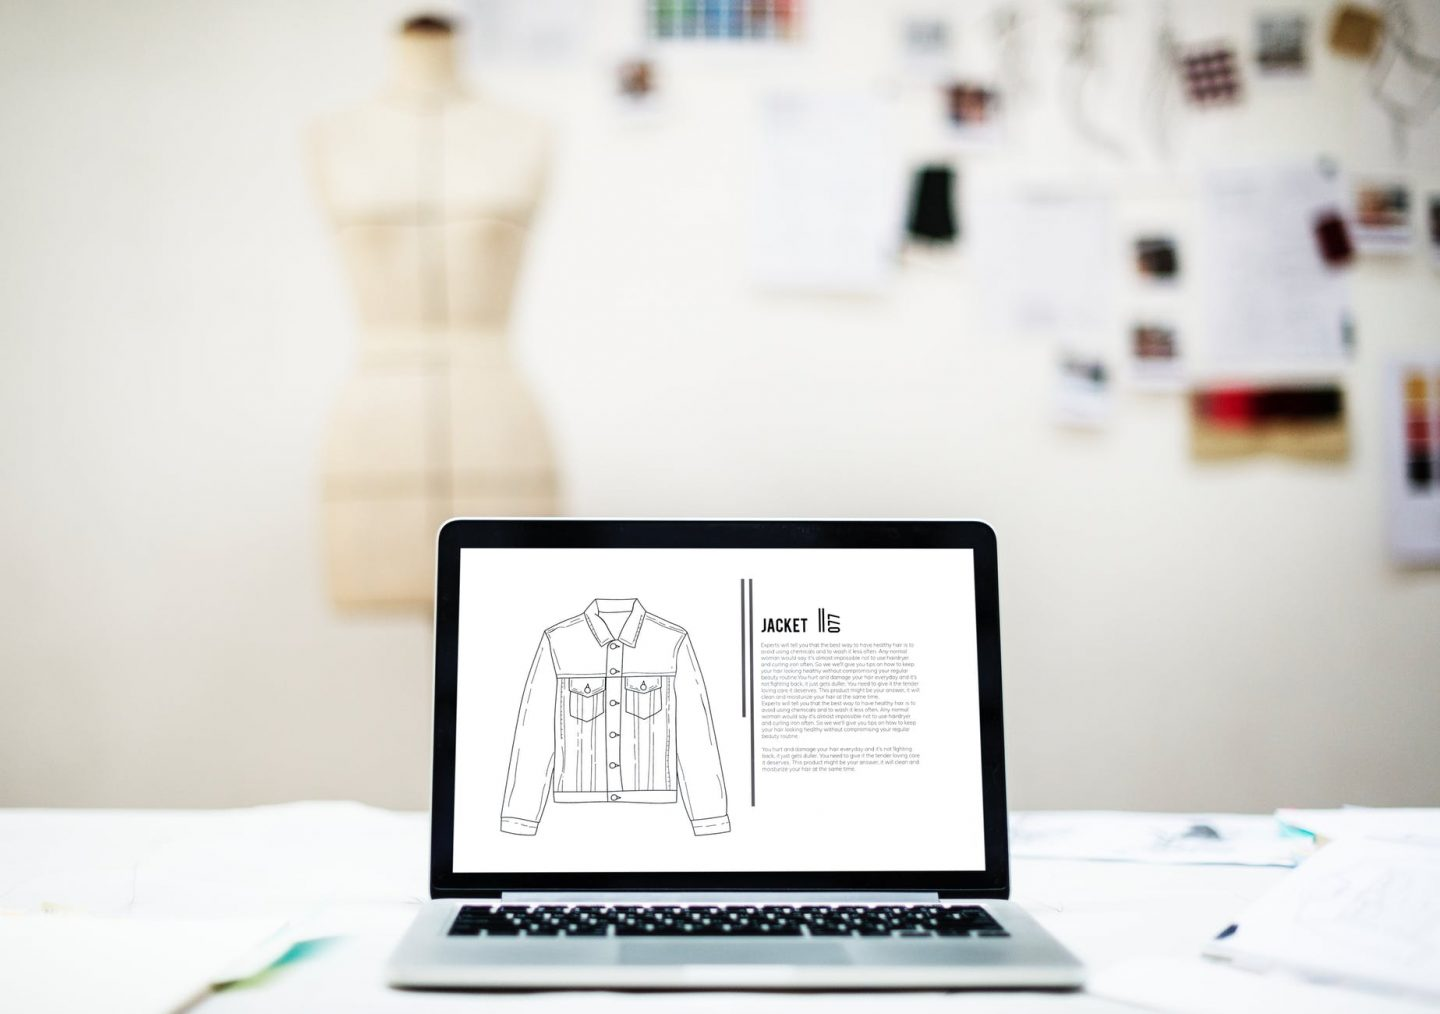 body contour fashion: open laptop with sketch of a jacket with blurred image of mannequin in the background